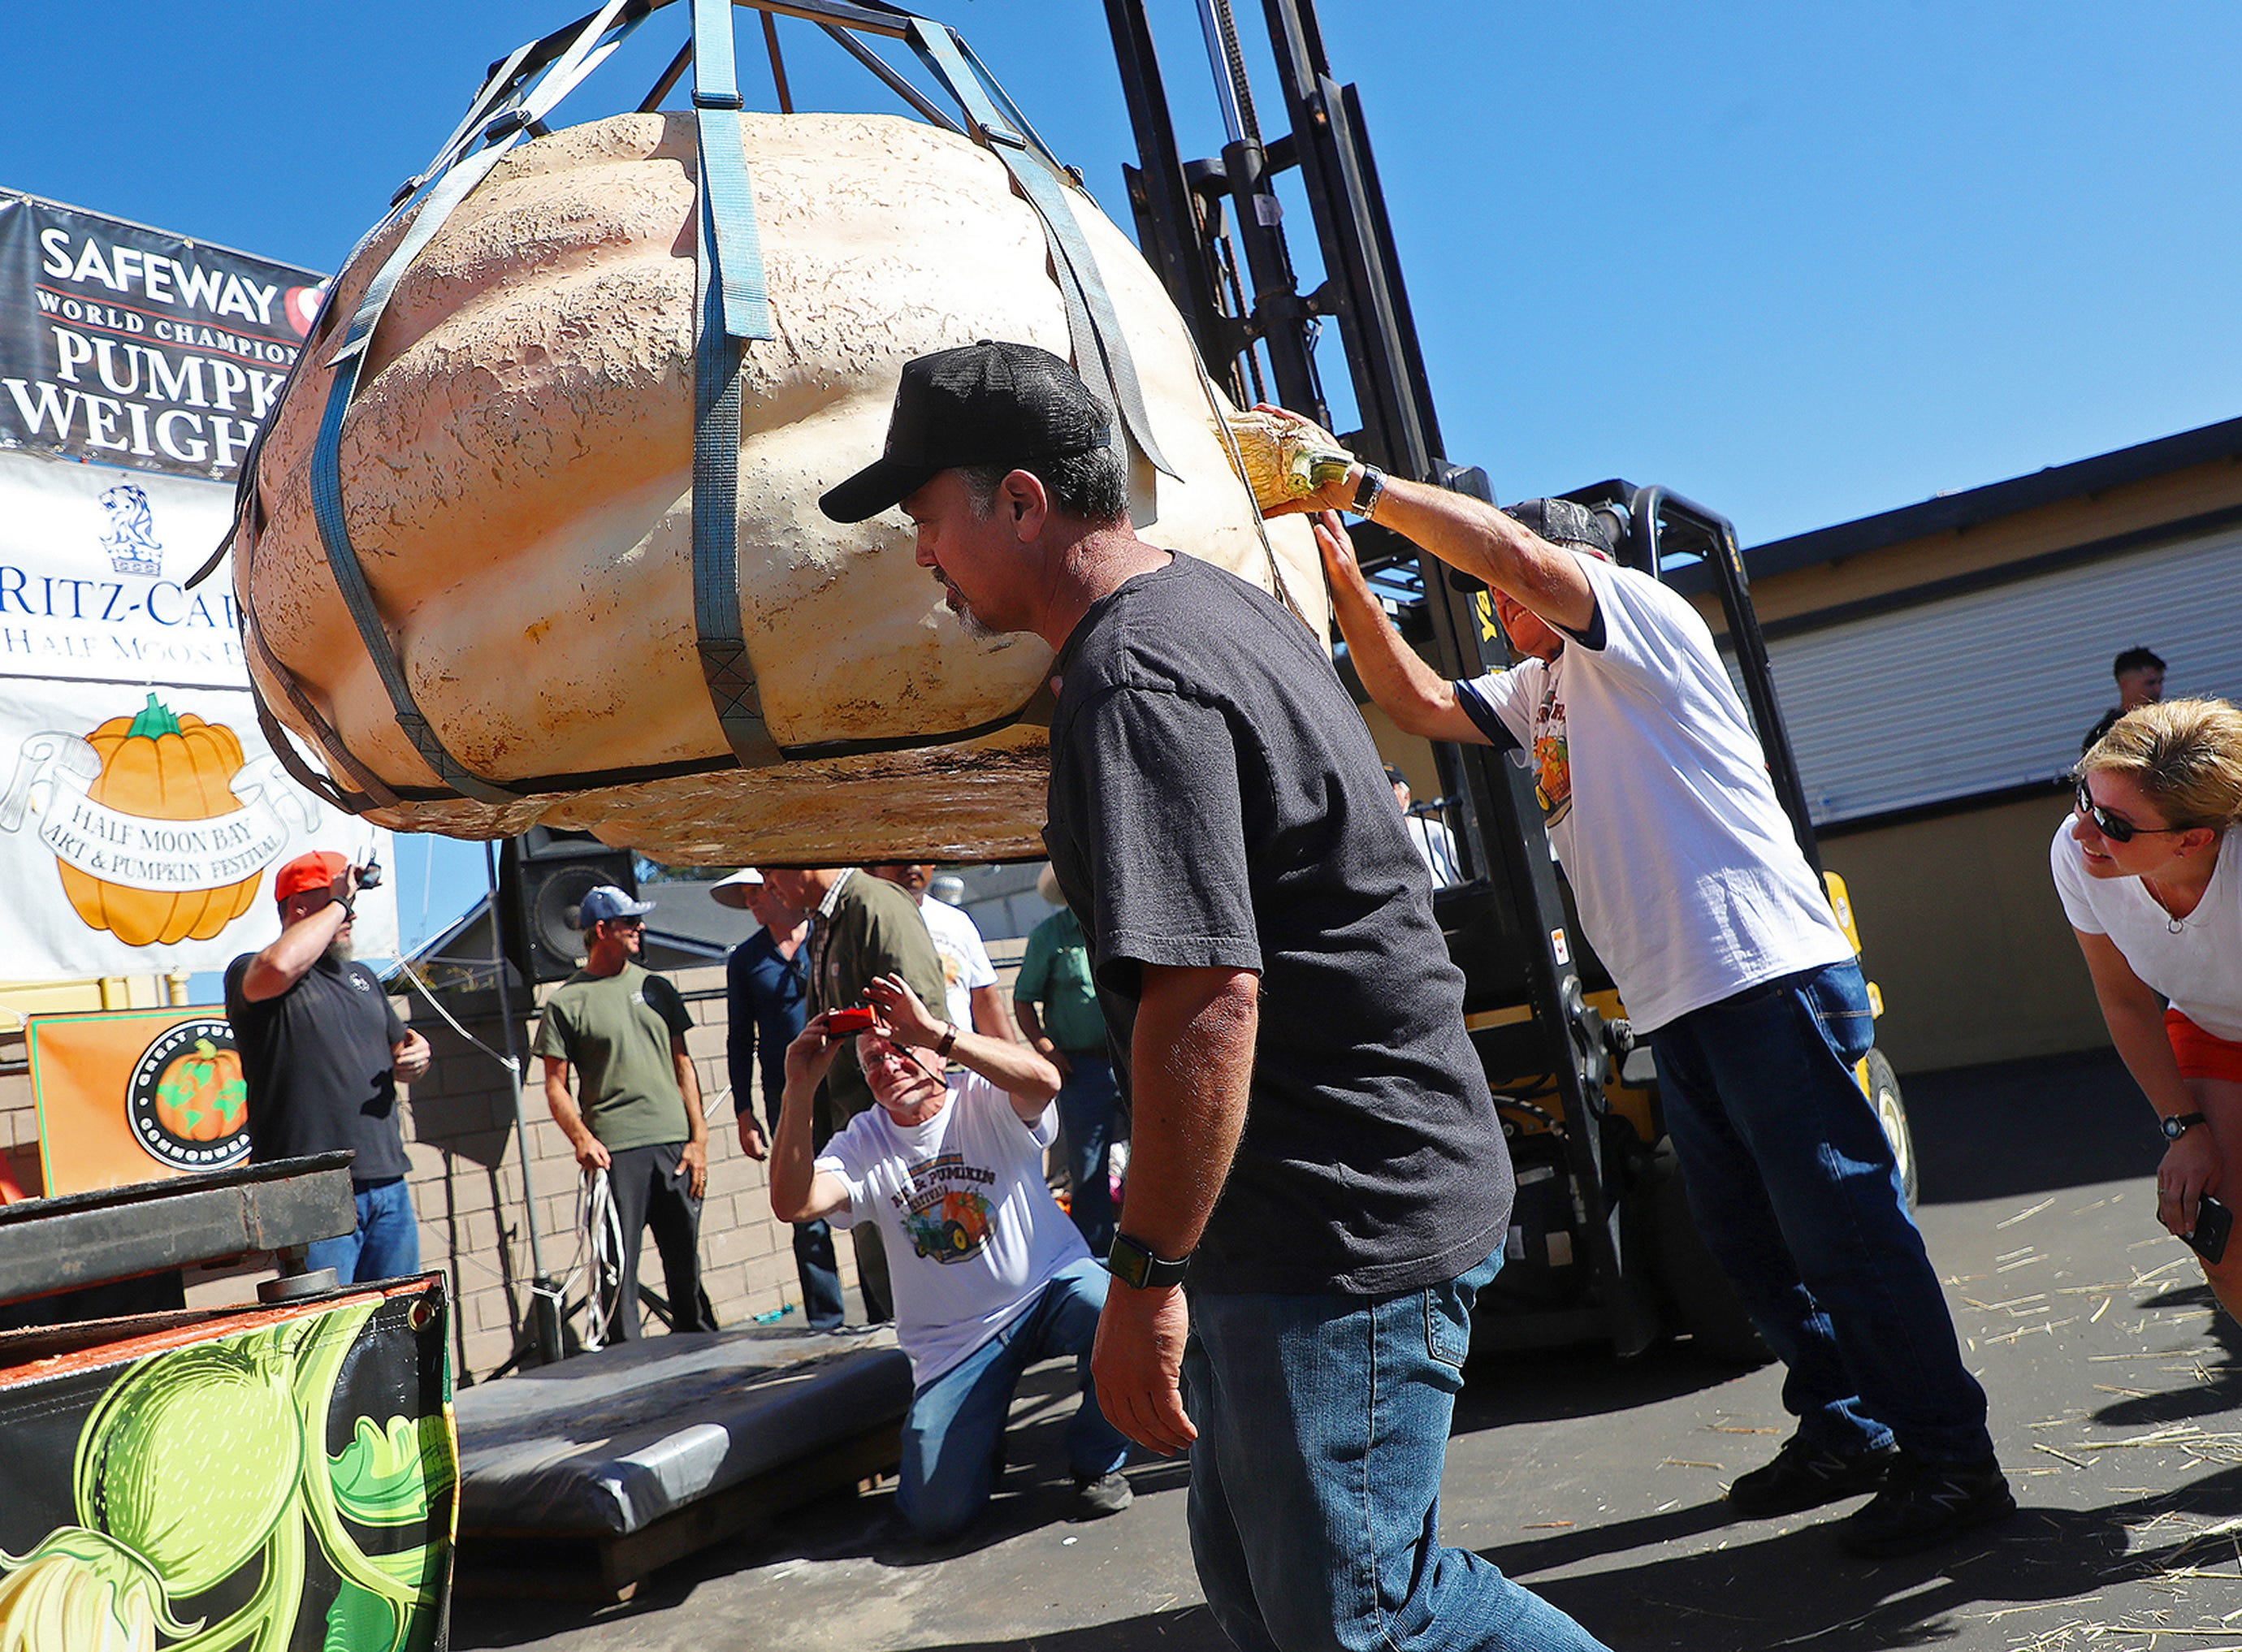 Judges inspect the first place pumpkin in the 45th annual Safeway World Championship Pumpkin Weigh-Off on Monday, Oct. 8, 2018, in Half Moon Bay, Calif. A commercial pilot from Oregon raised a giant pumpkin weighing 2,170 pounds (984 kilograms) to win a pumpkin-weighing contest in Northern California. Steve Daletas credited a good seed and lots of sunny days since he planted it April 15. It is the fourth time Daletas takes top honors at the annual pumpkin-weighing contest. (Aric Crabb/Bay Area News Group via AP) ORG XMIT: CAJOS503